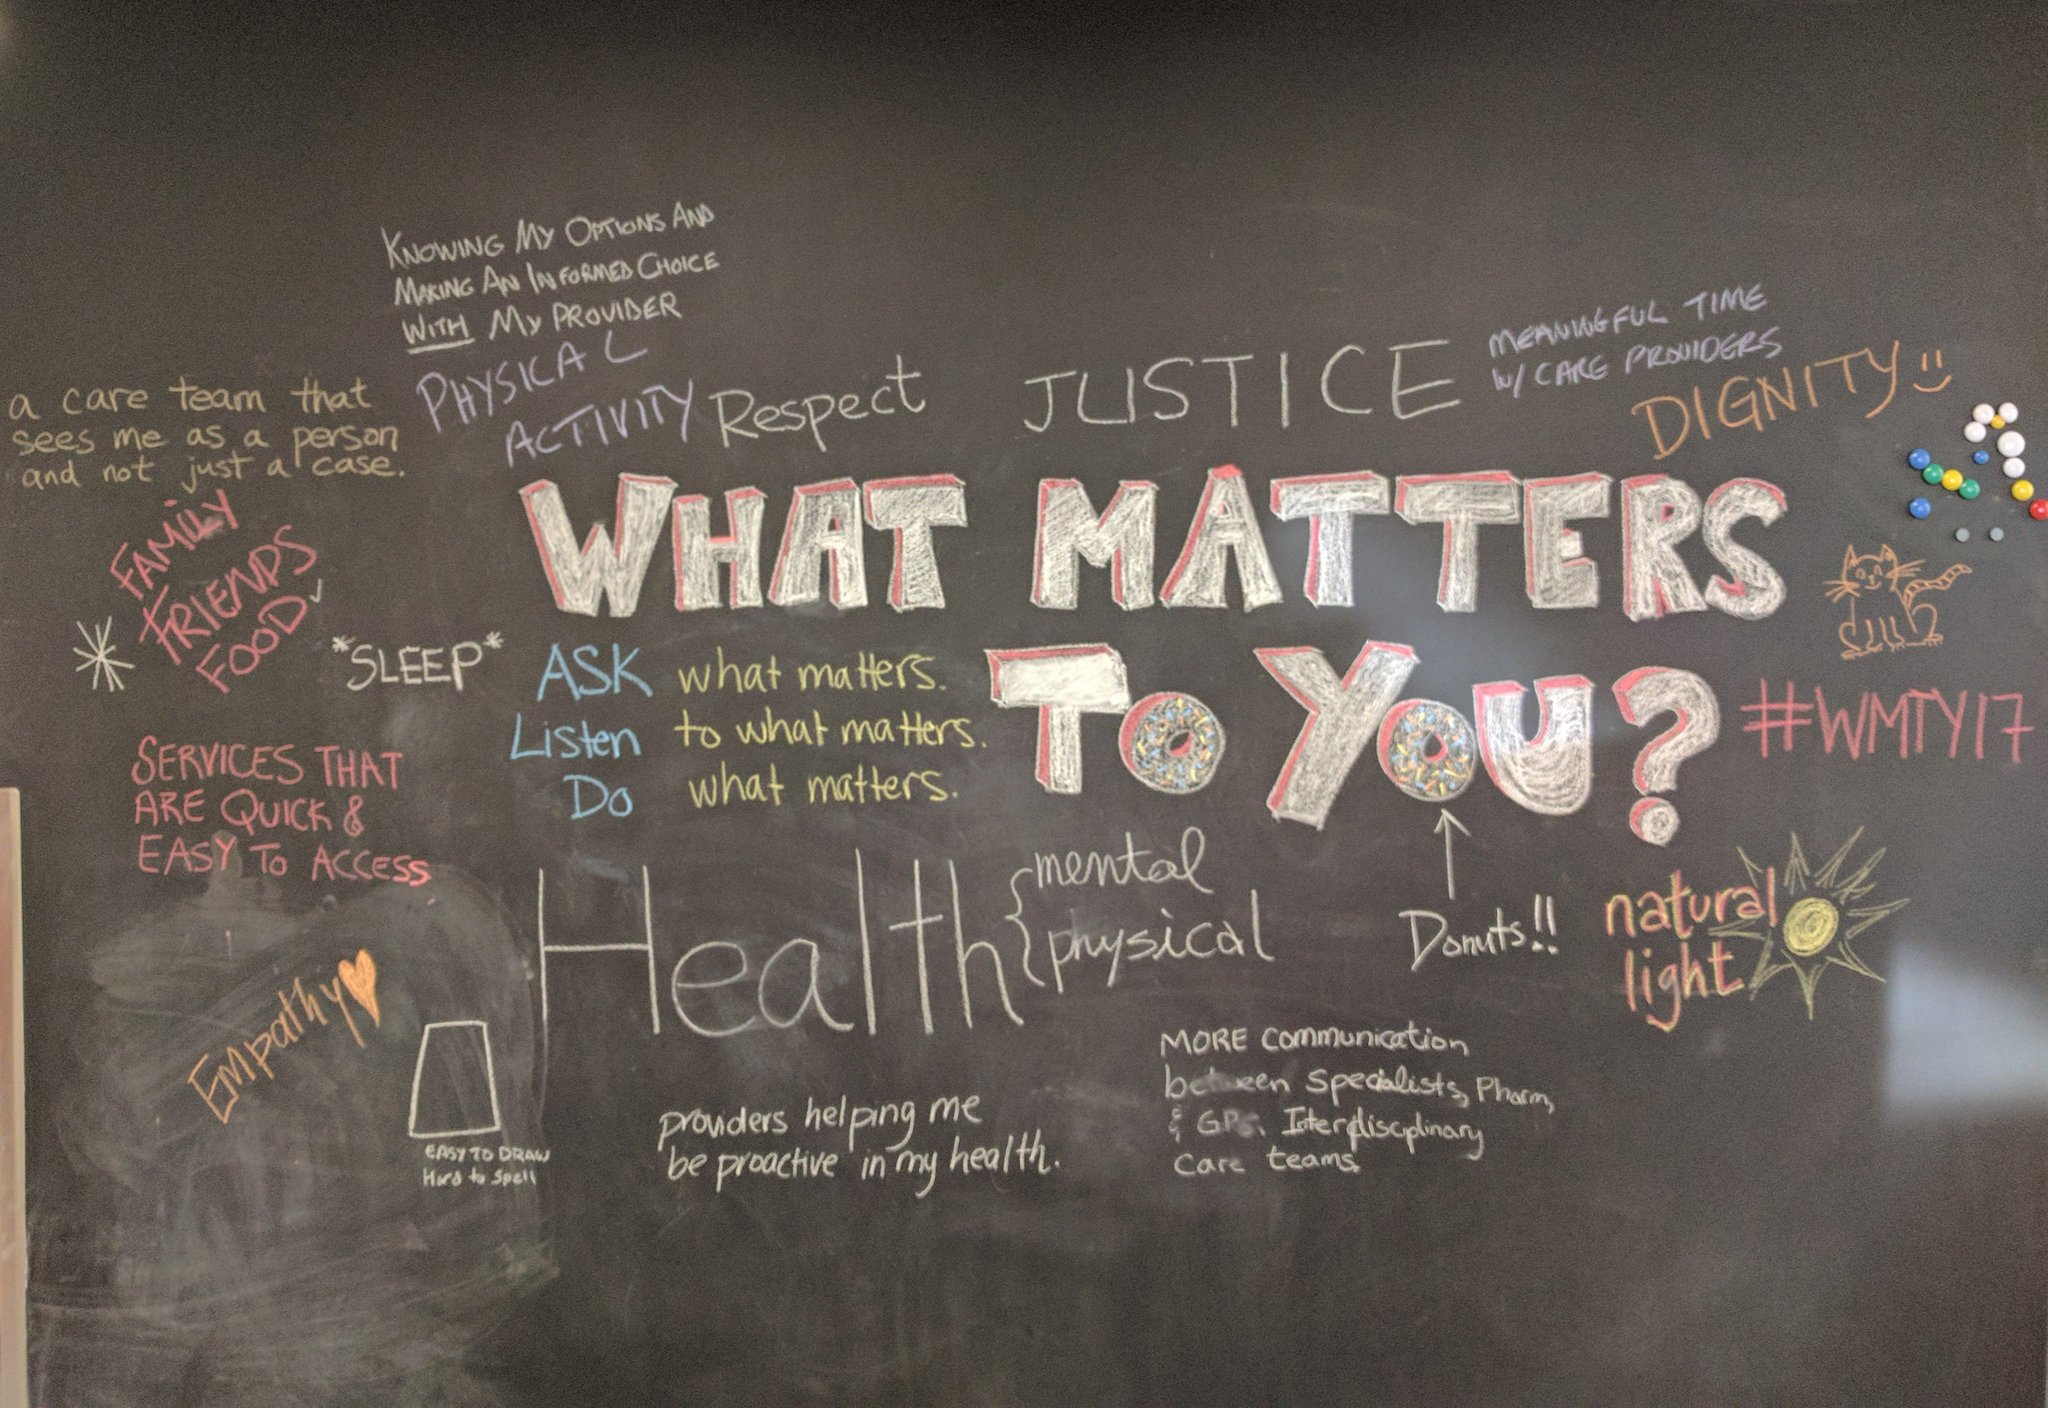 The What Matters to You chalkboard wall continues to grow @BCPSQC  What matters to you? #WMTY17 @PatientVoicesBC https://t.co/BIISw0m3bX